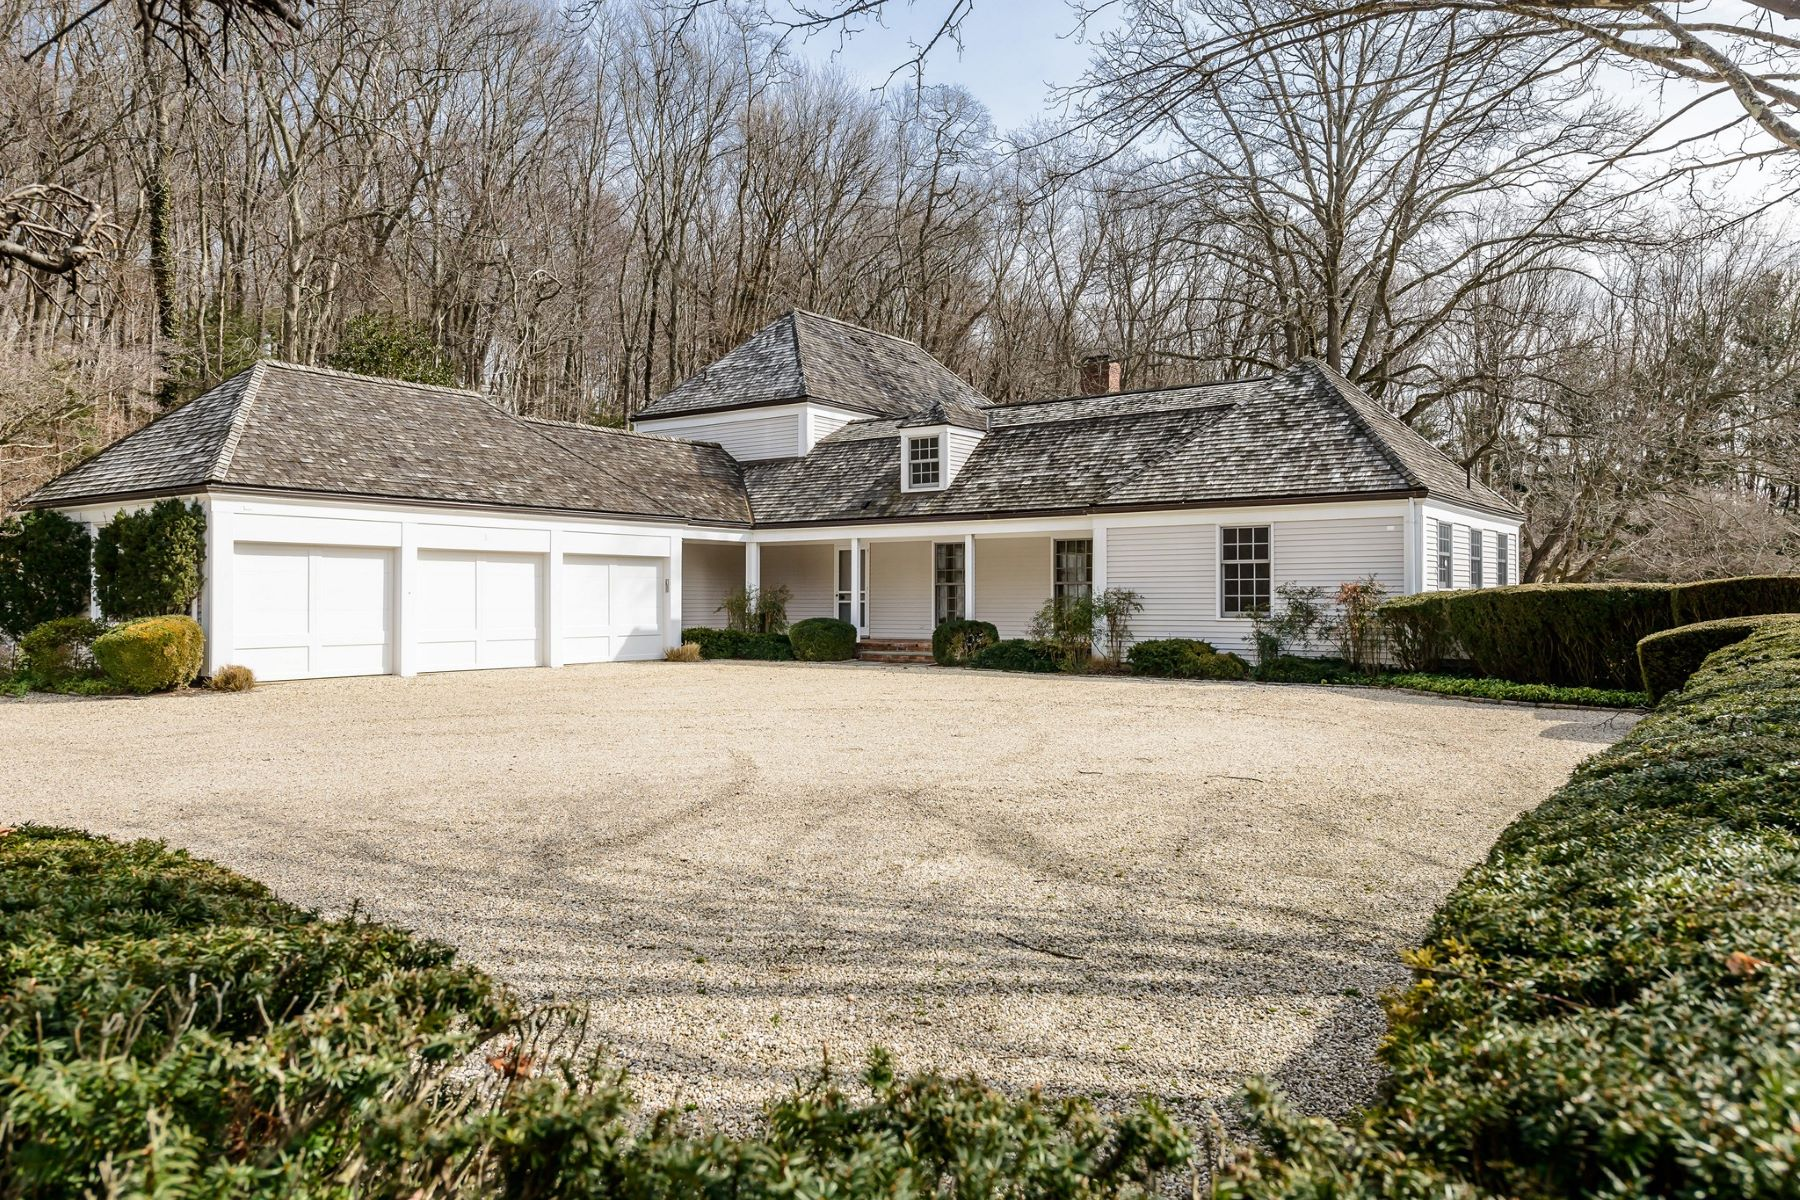 Single Family Home for Sale at 108 Horseshoe Rd 108 Horseshoe Rd Mill Neck, New York, 11765 United States